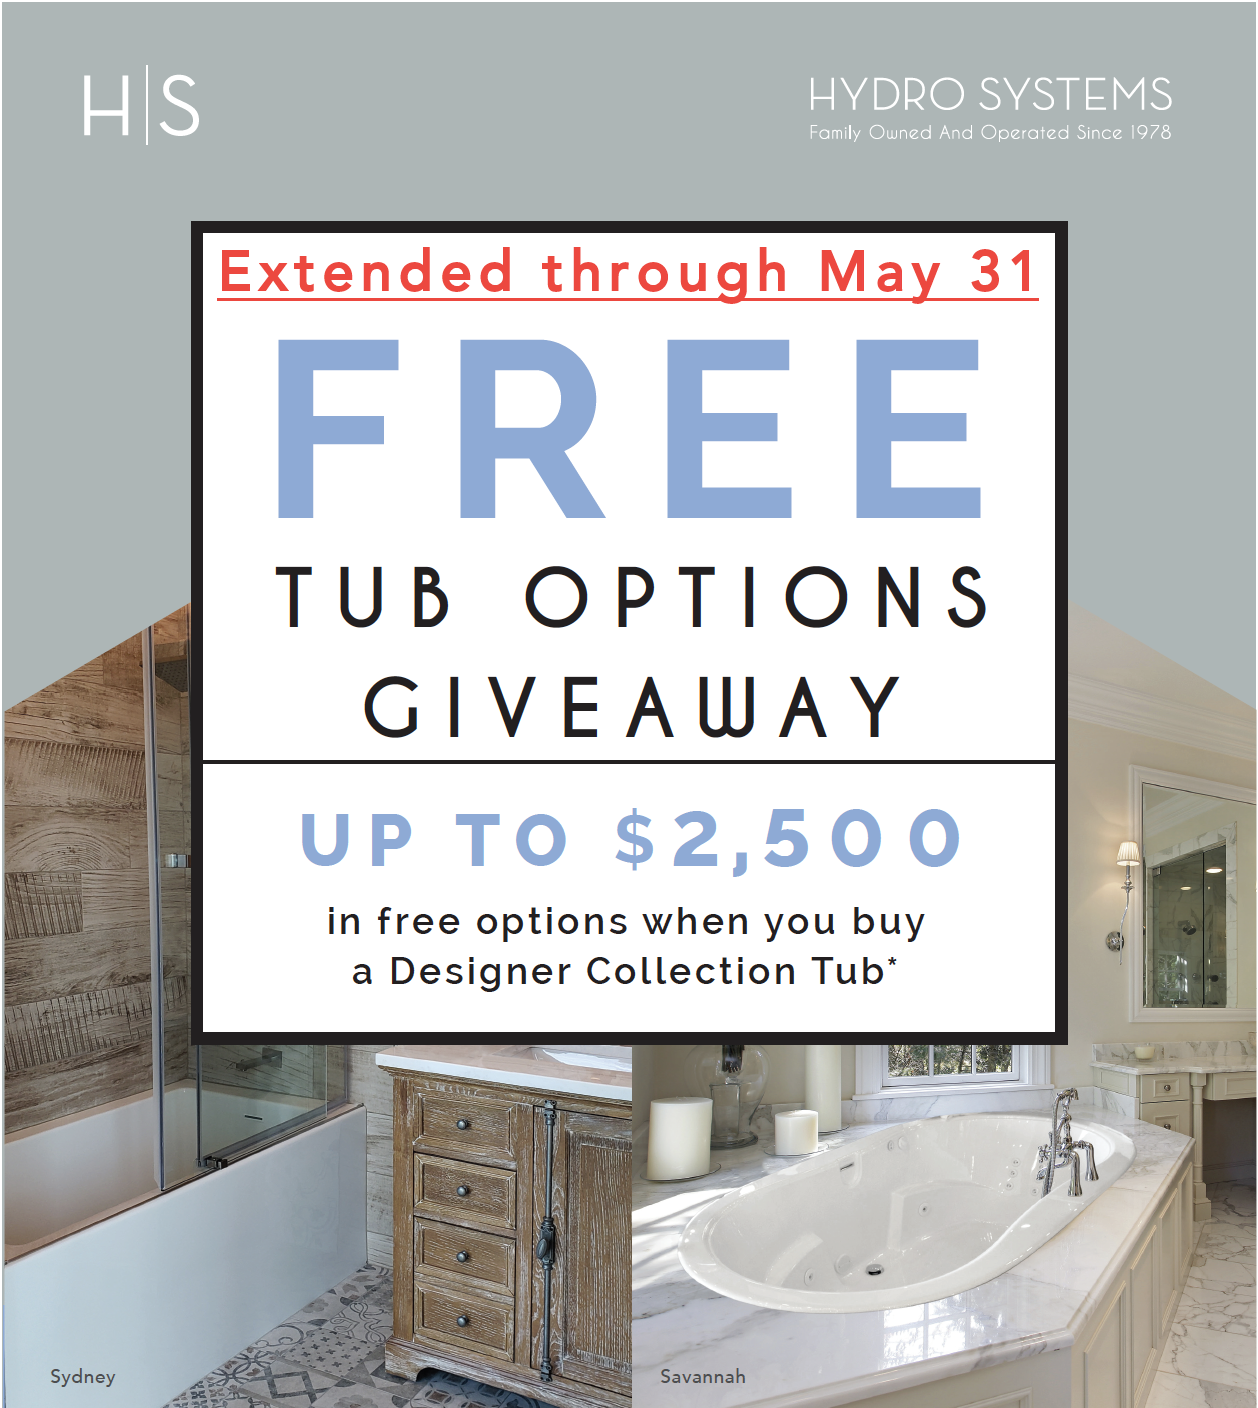 Free Tub Options Giveaway - Extended through May 31